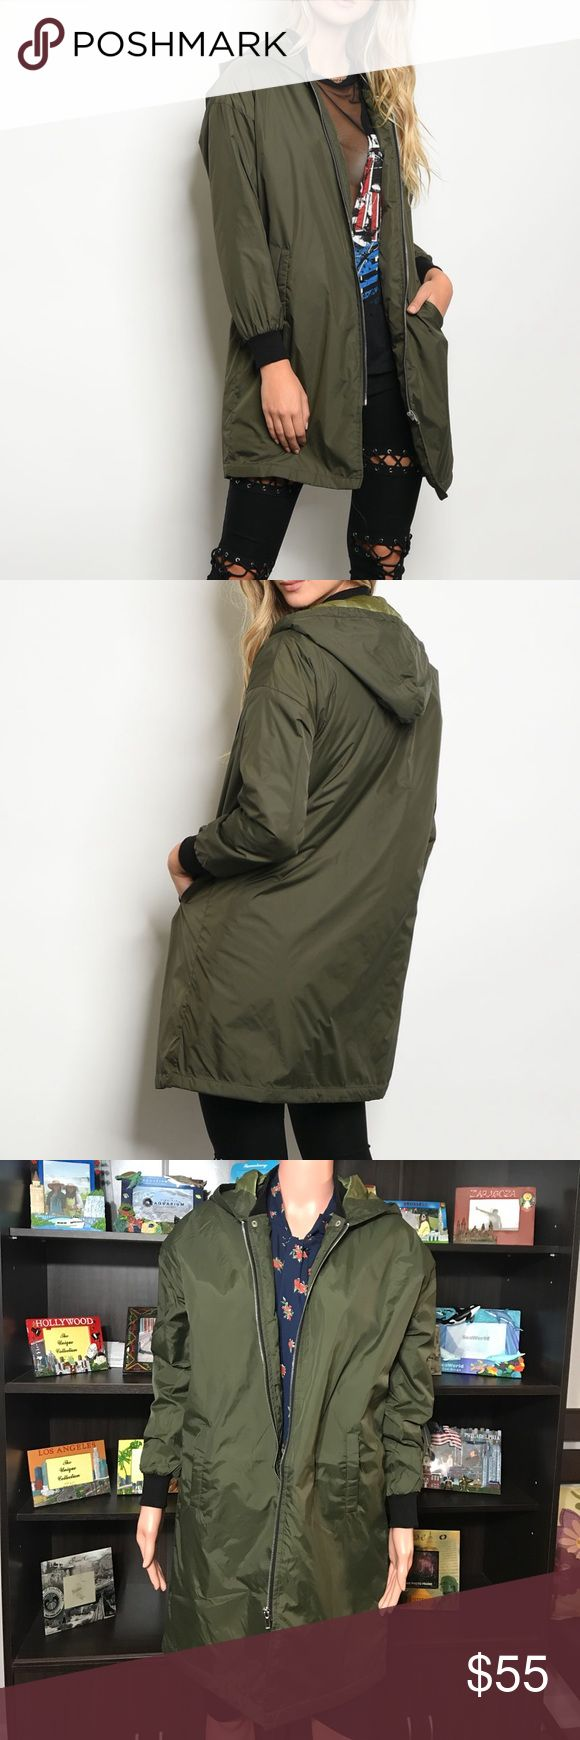 "Olive Bomber Jacket with Detachable Hood Long line bomber jacket, with detachable hood, ribbed cuffs and a zipper colure. Fabric Content: 100% NYLON  Measurements: Small: L: 35"" B: 36"" W: 38"" Shoulder to shoulder 16"" Medium: L: 36"" B: 37"" W: 39"" Shoulder to shoulder 17"" Large: L: 36"" B: 38"" W: 40"" Shoulder to shoulder 18"" Jackets & Coats"